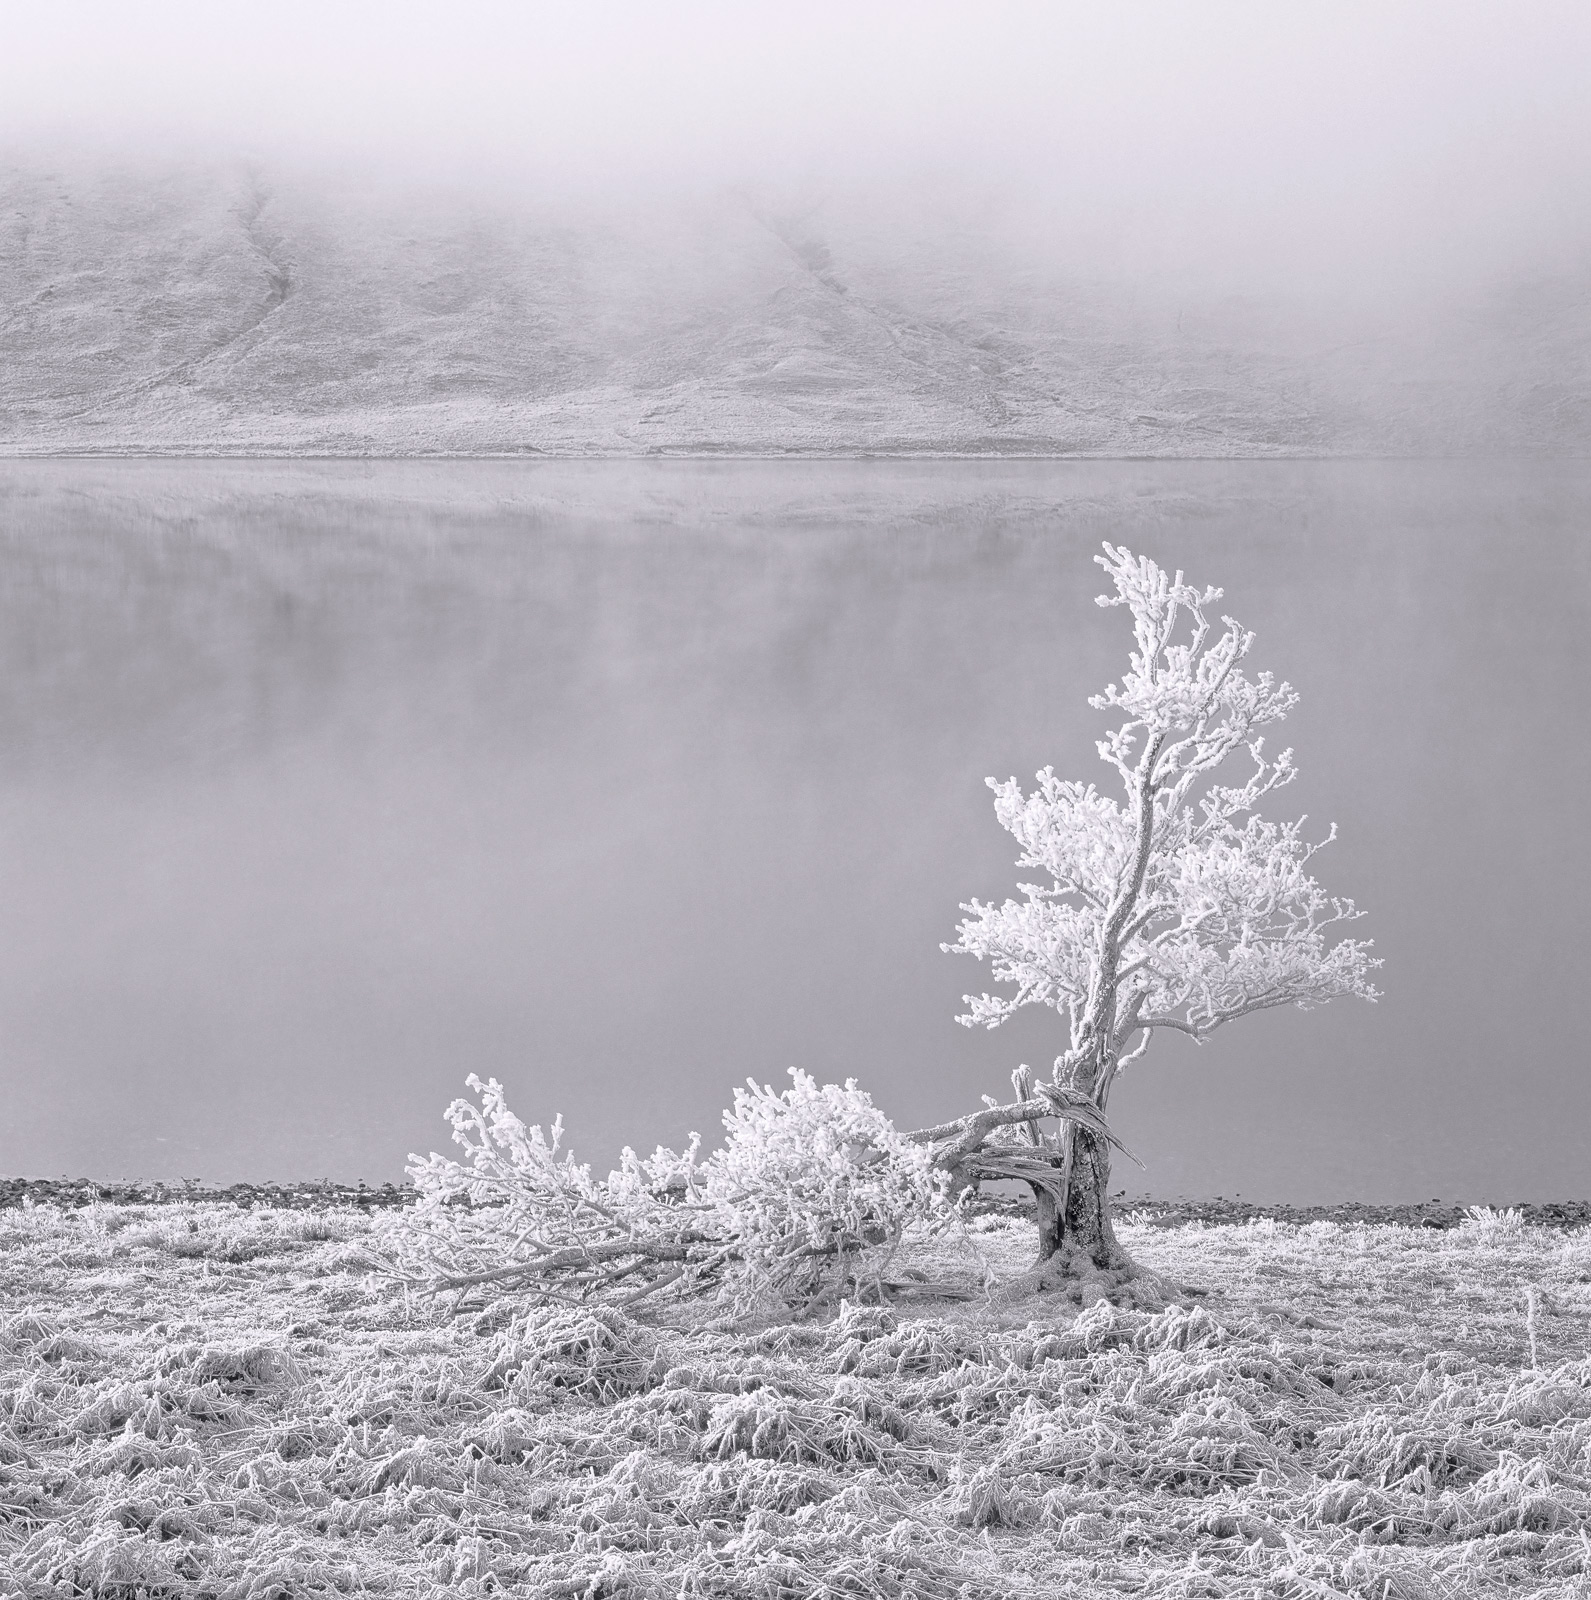 An old tree allegedly struck by lightning and suffering the effects of severe frost damage stands alone at the edge of refridgerated...